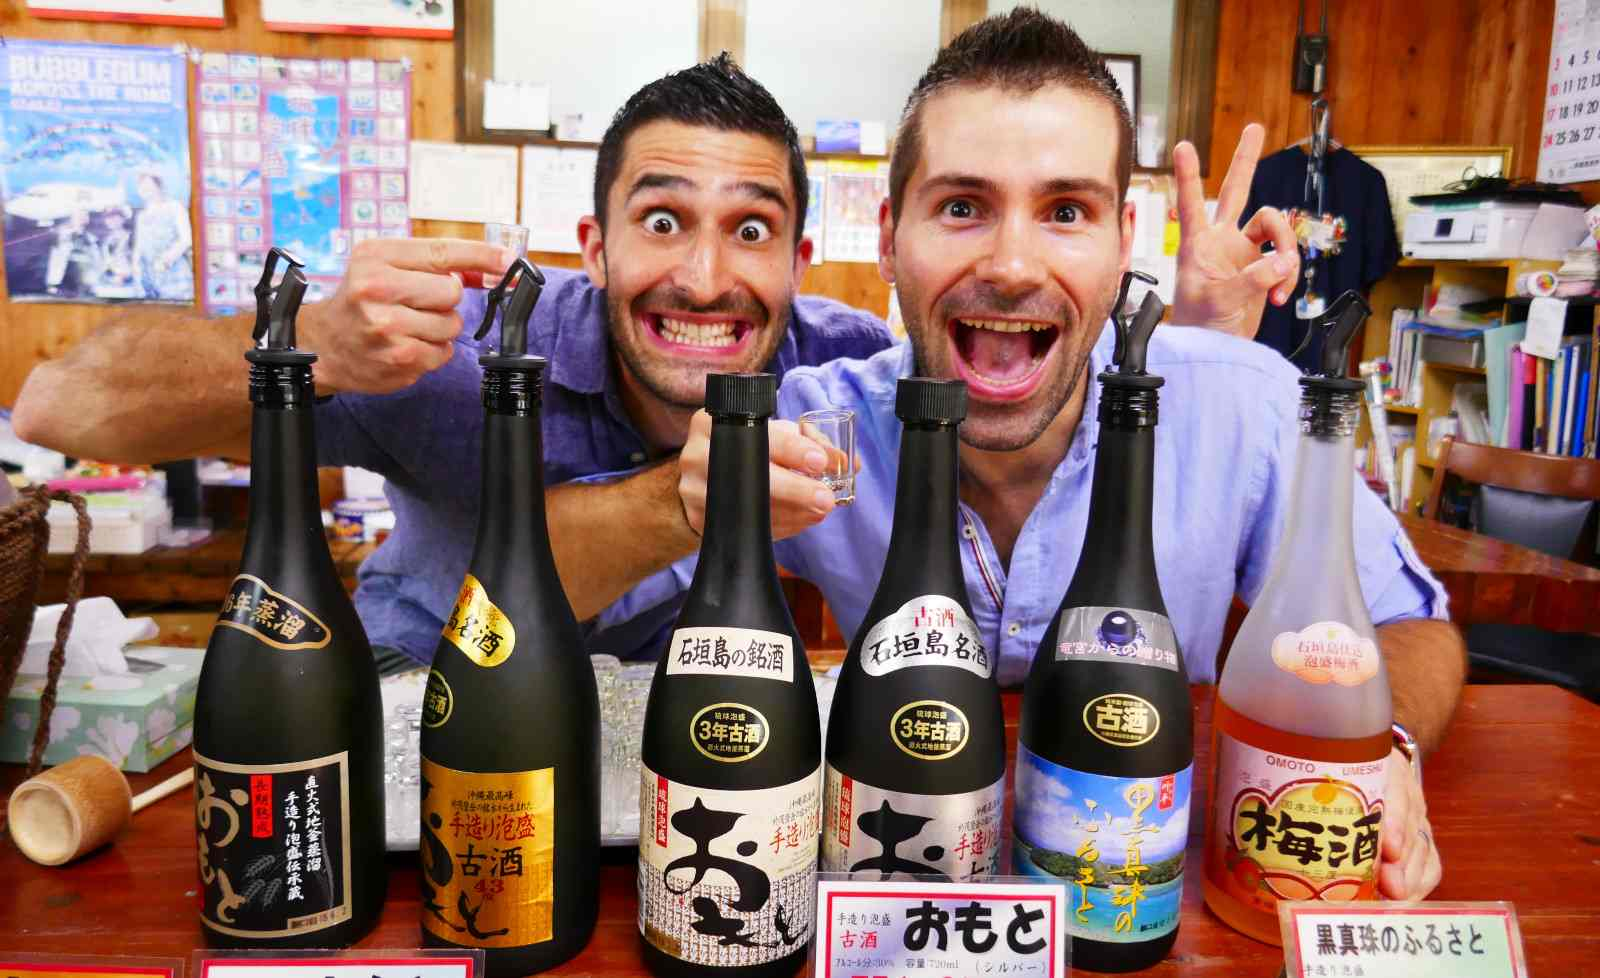 Yaki Udon is Japanese dish which goes well with the traditional Sake from Japan